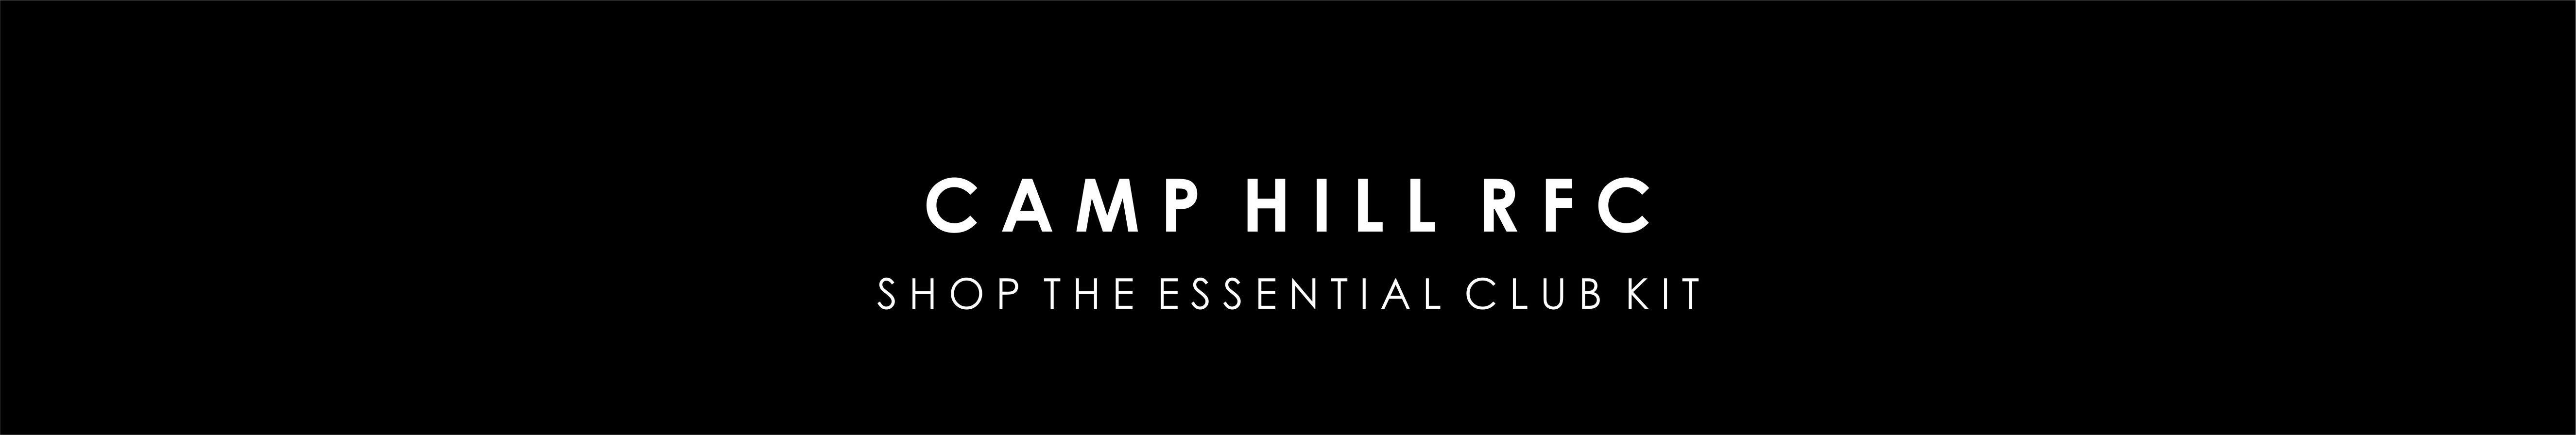 camp-hill-rfc-banner.jpg